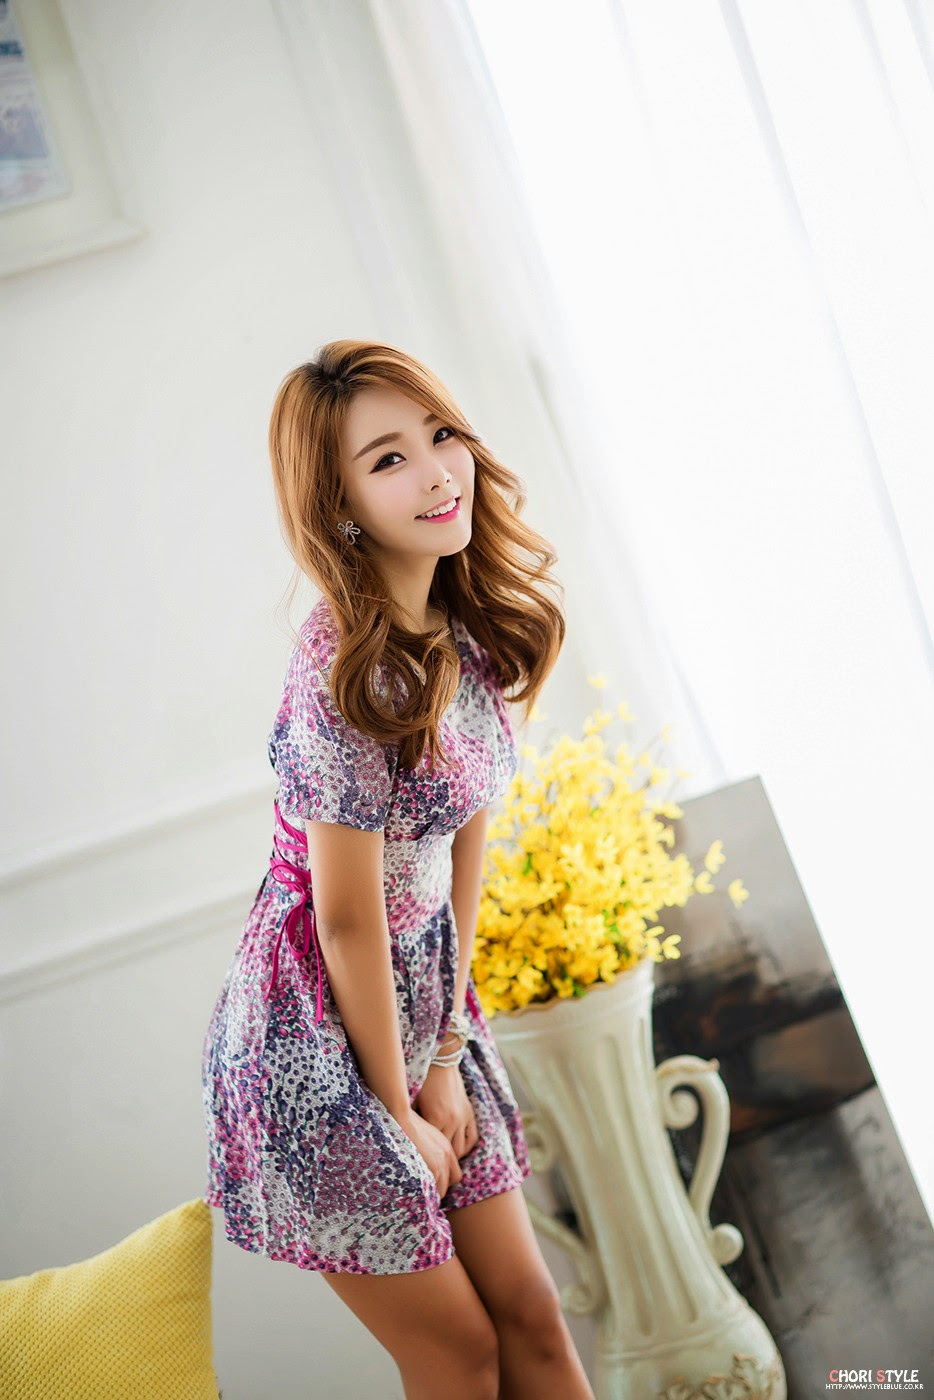 2 Lee Da Hee - very cute asian girl-girlcute4u.blogspot.com